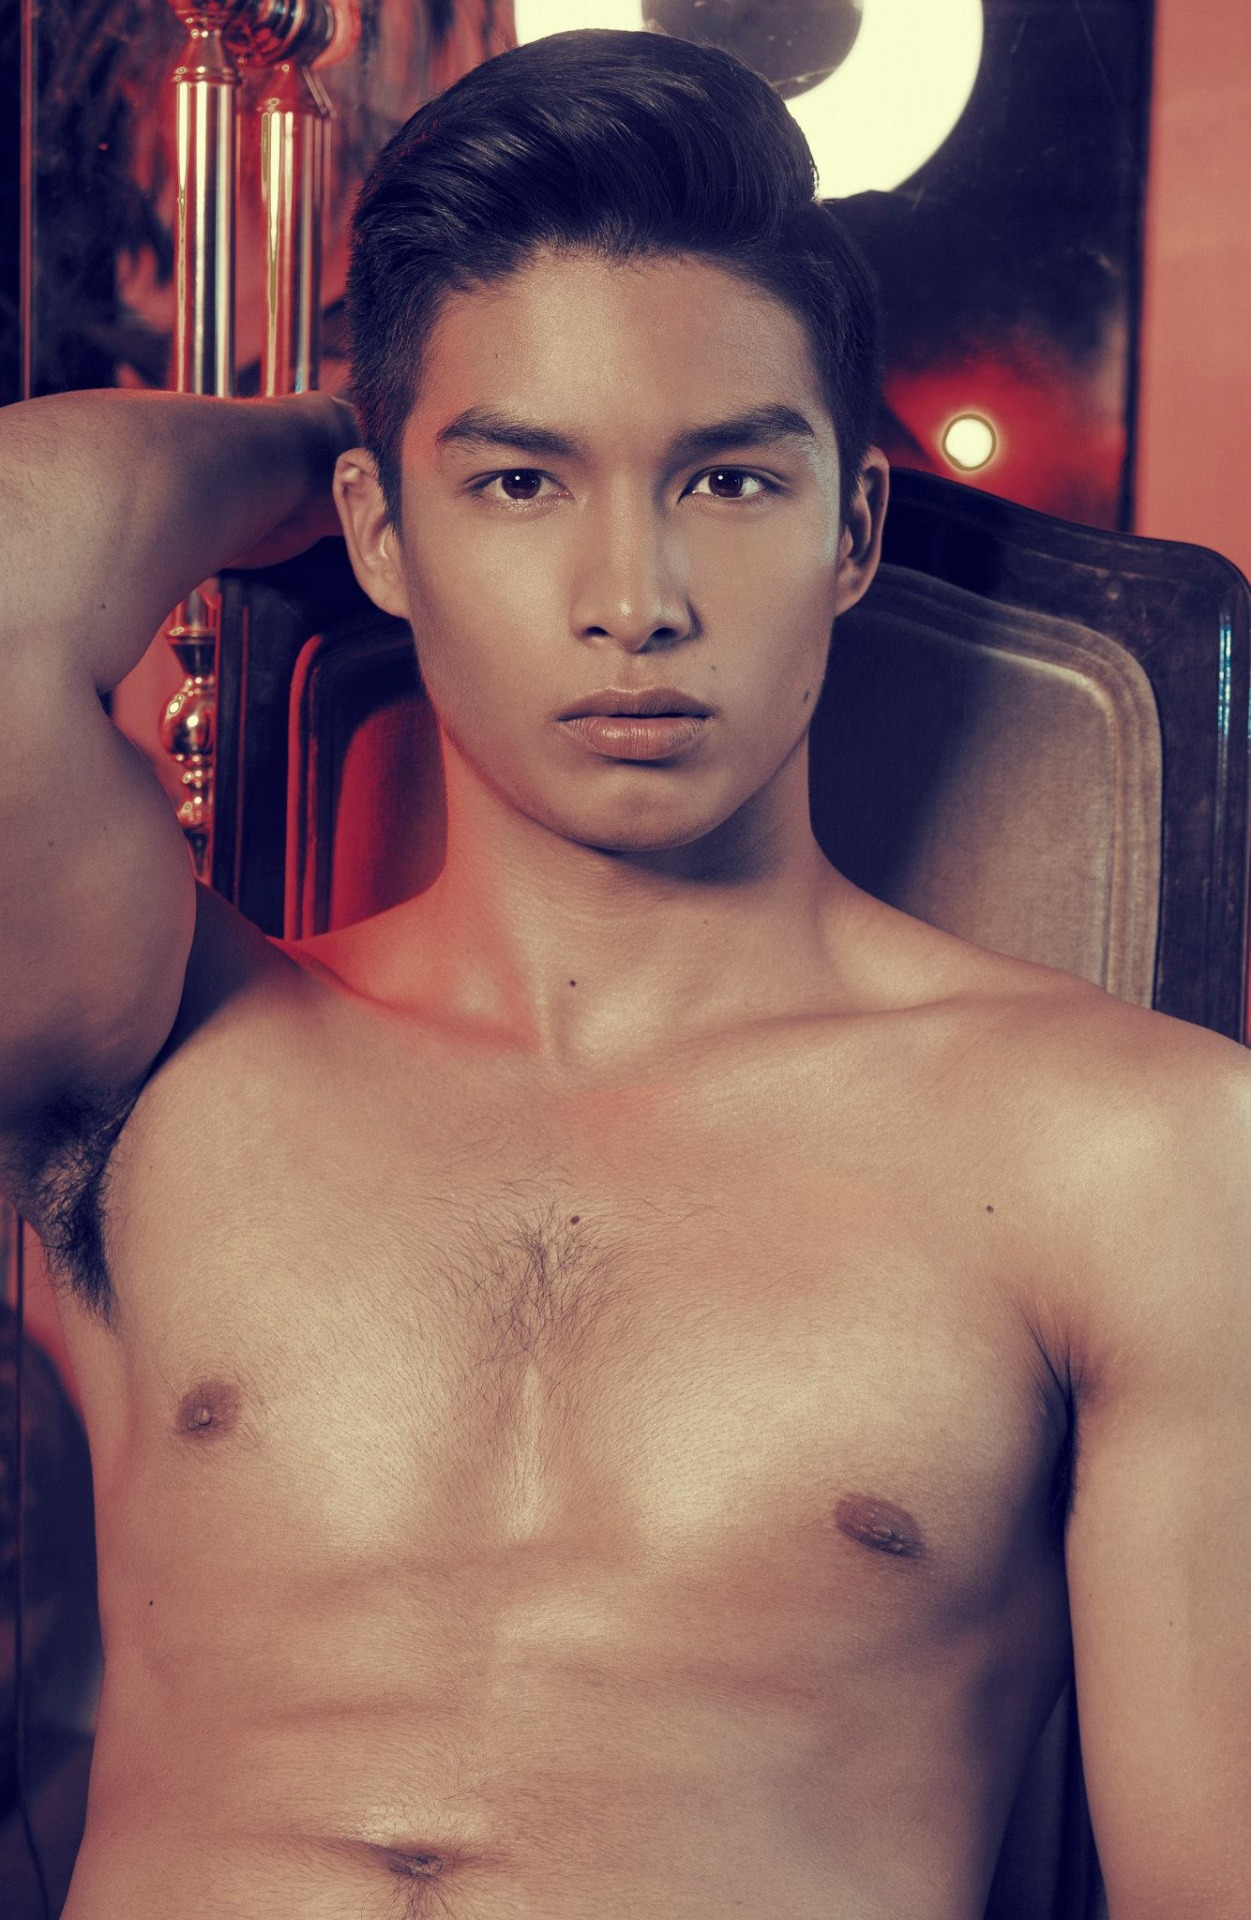 Hot Nude Pictures Of Pinoy Actors